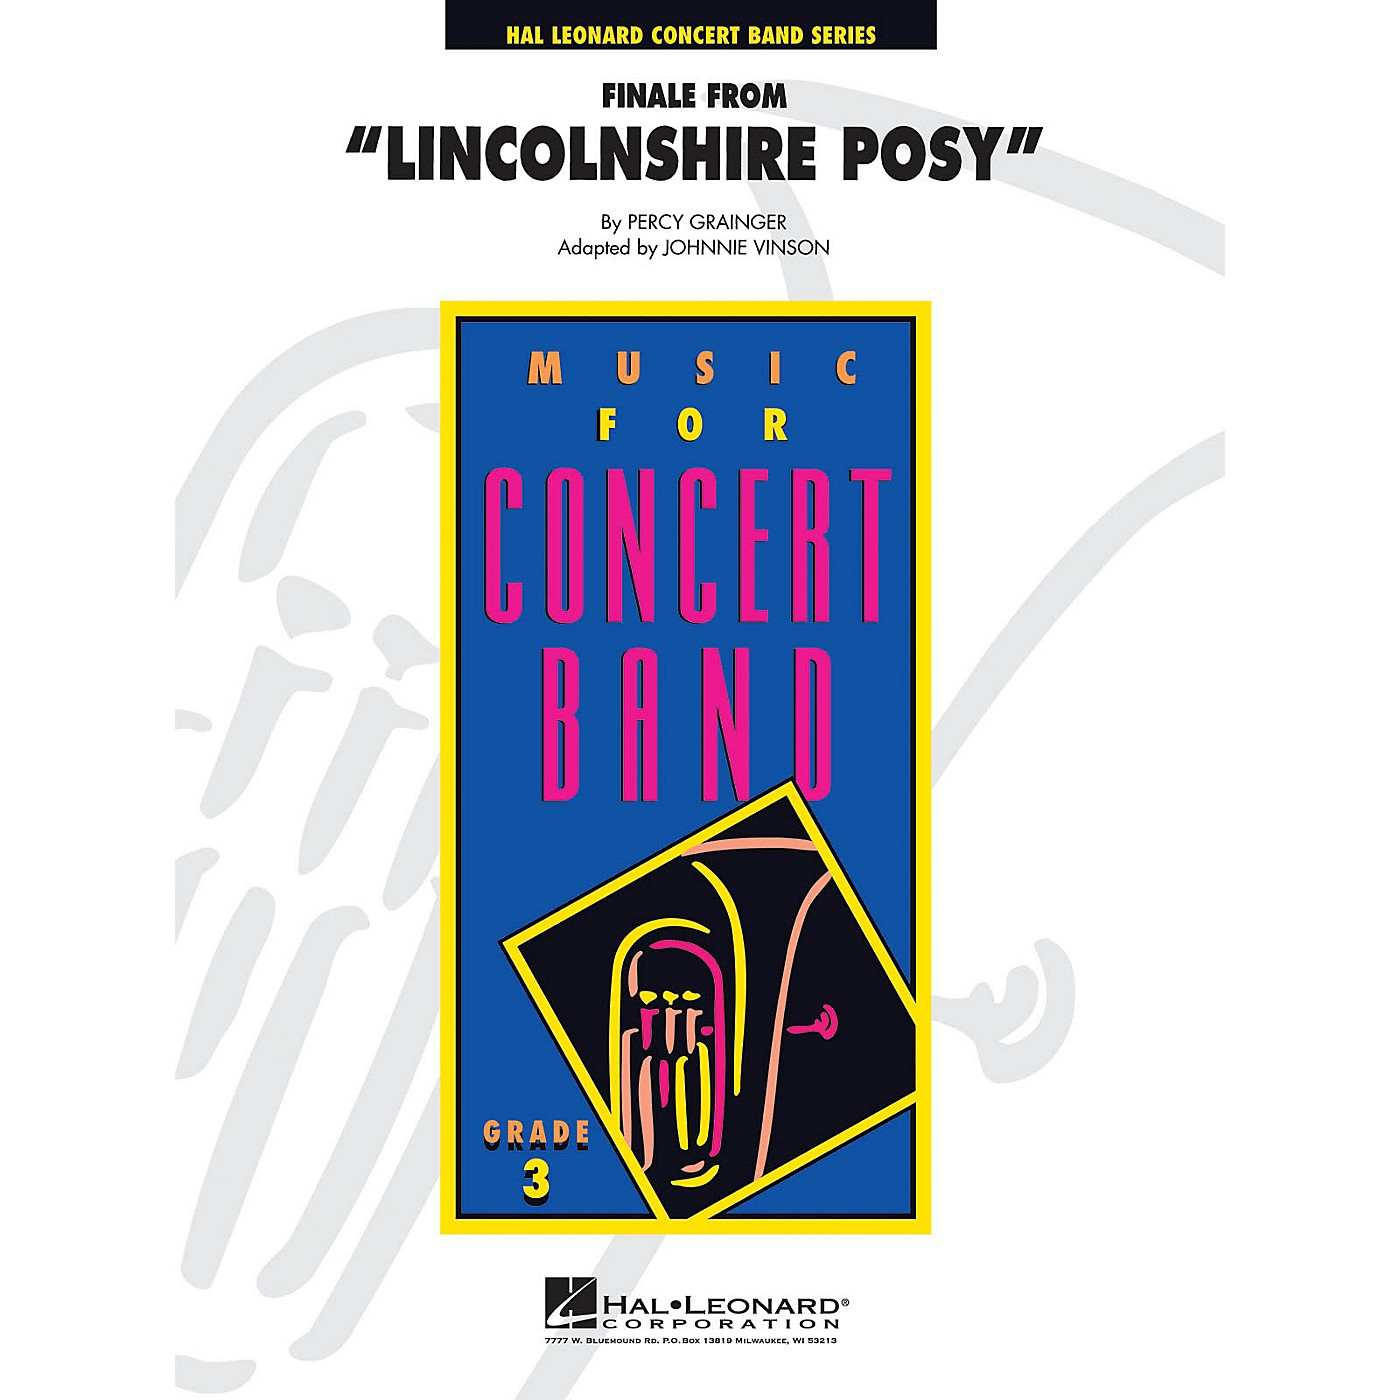 Hal Leonard Lincolnshire Posy, Finale From - Young Concert Band Level 3 arranged by Johnnie Vinson thumbnail